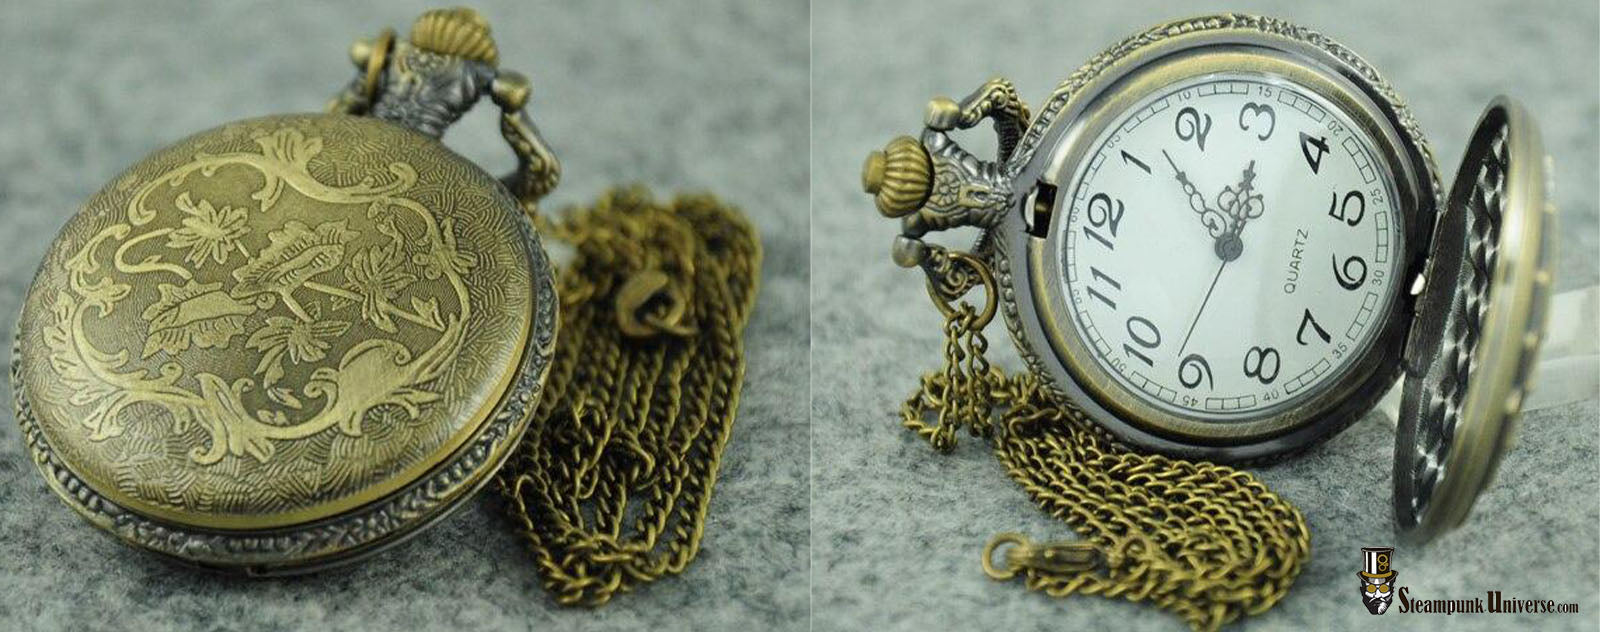 Montre à gousset steampunk poker